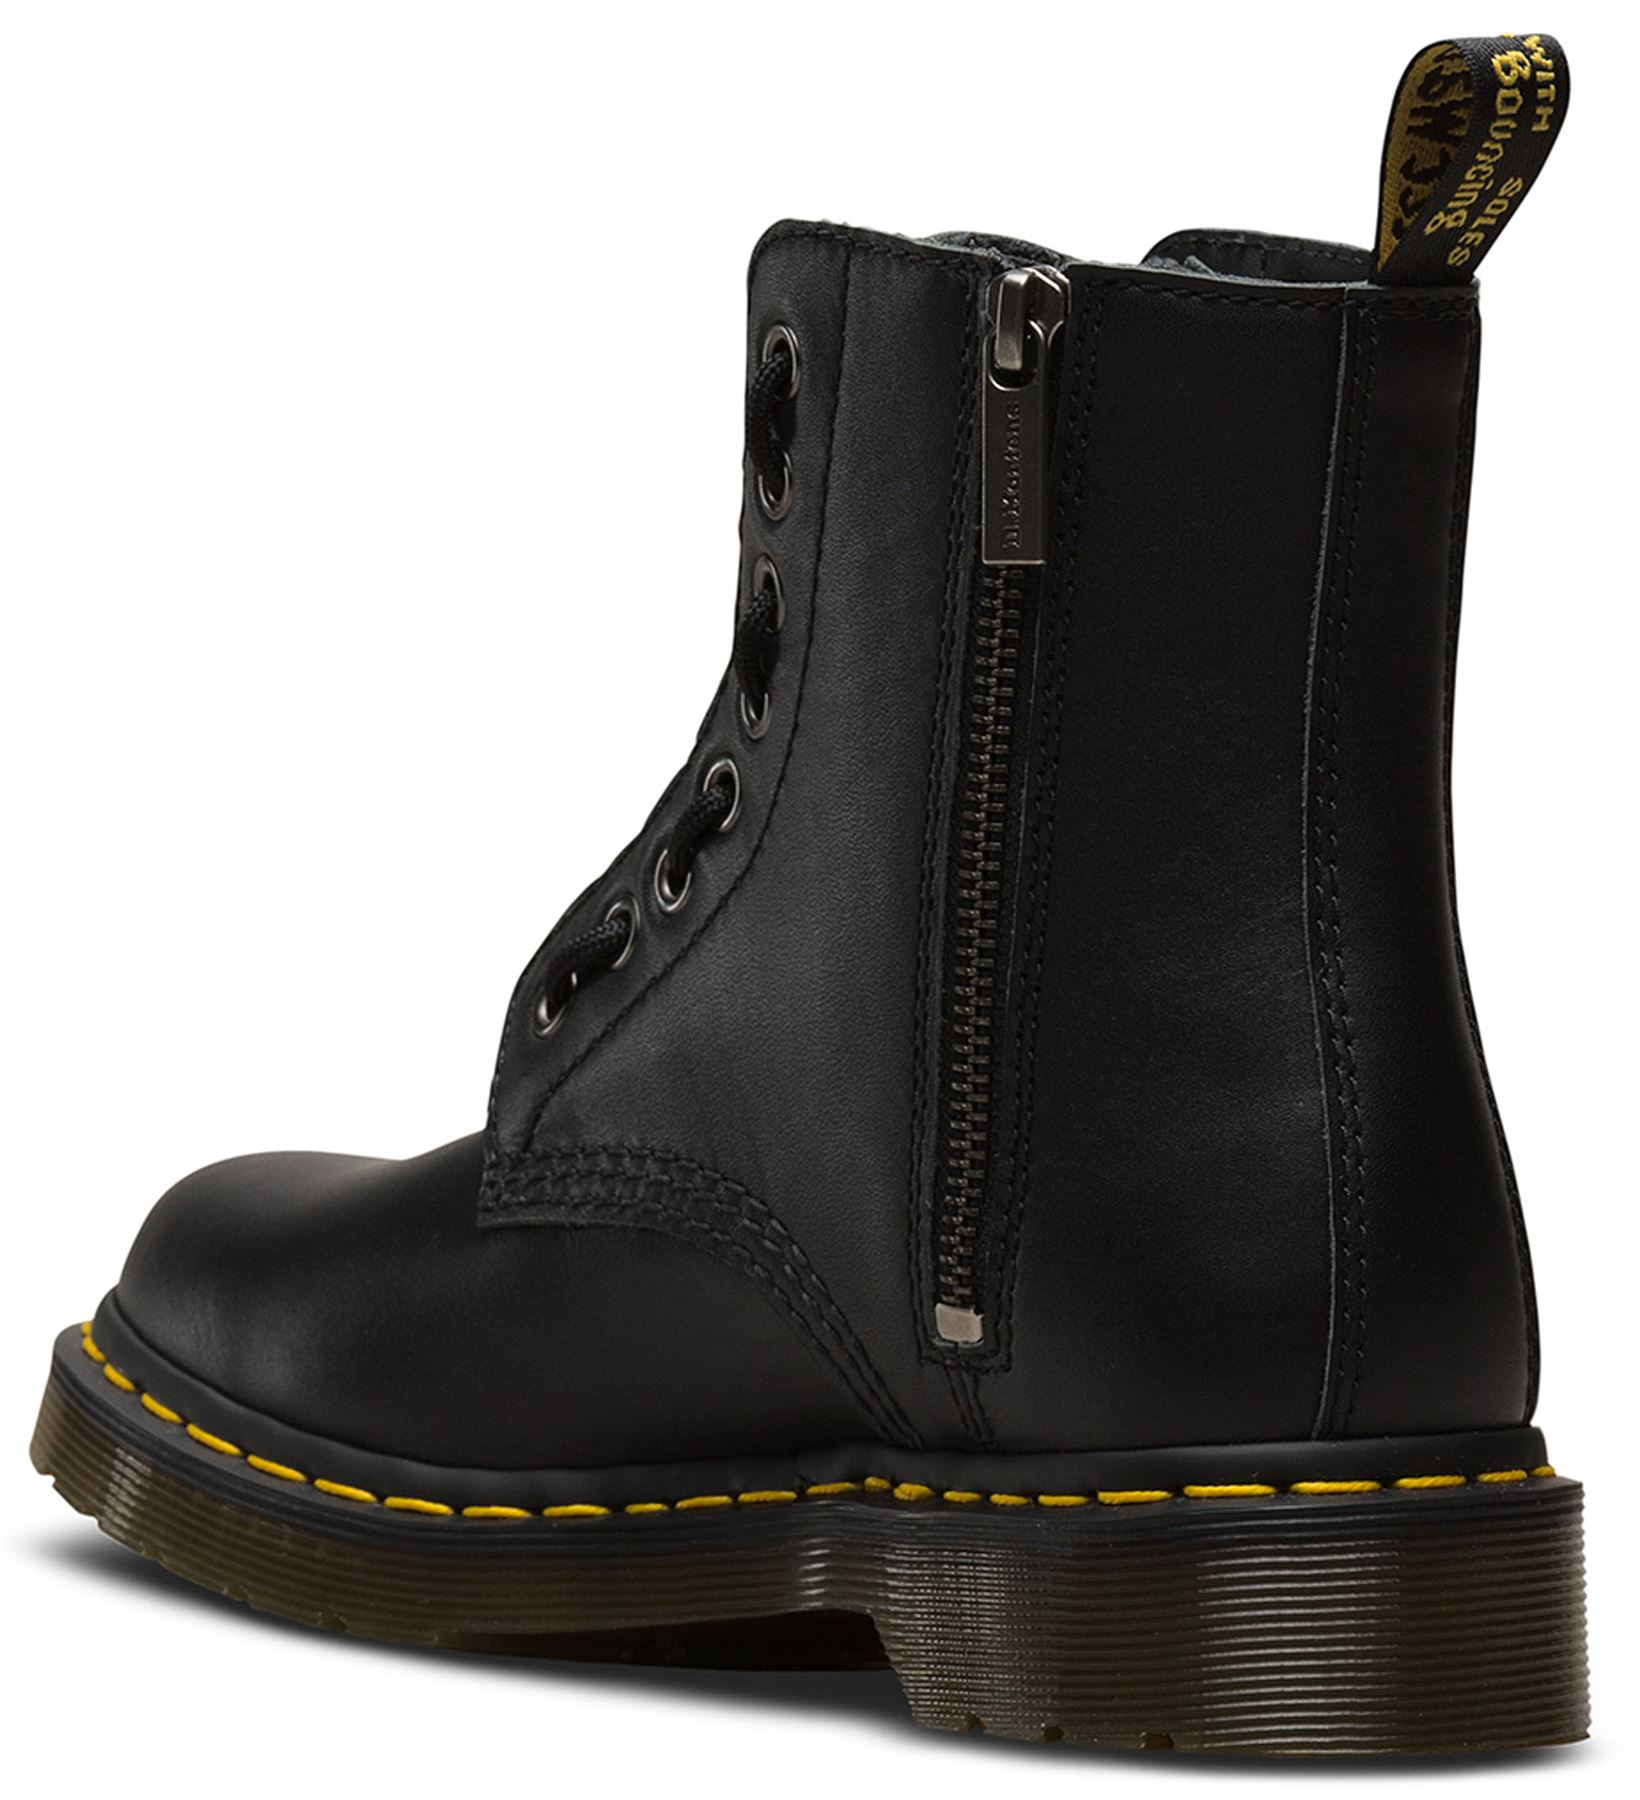 273627f3a22 Dr Martens 1460 PASCAL Front and Side Zip Black Soft Nappa Leather ...